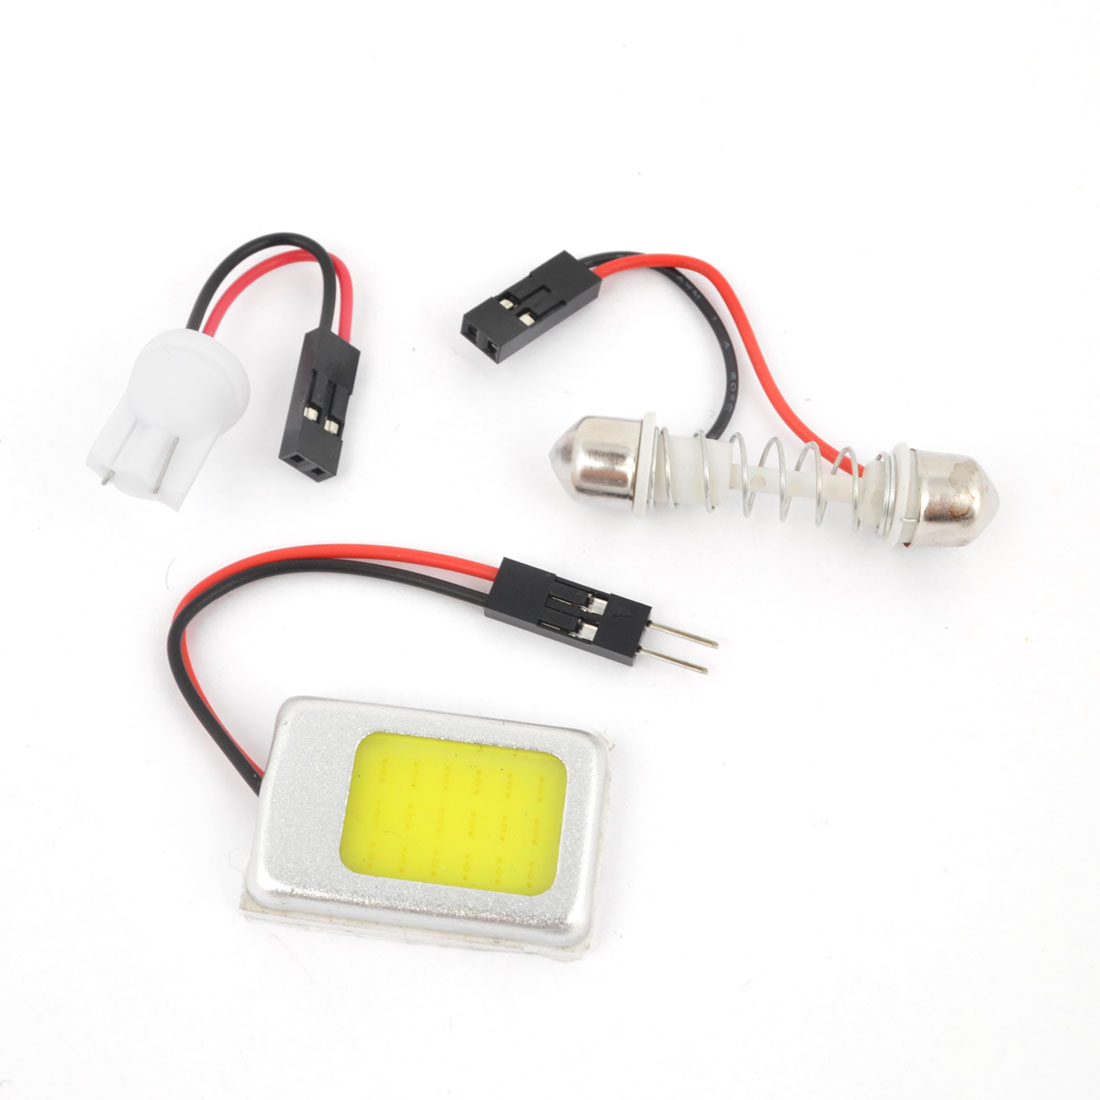 Internal Auto Car Interior White 18 COB LED Dome Lamp Panel + T10 Festoon Adapter